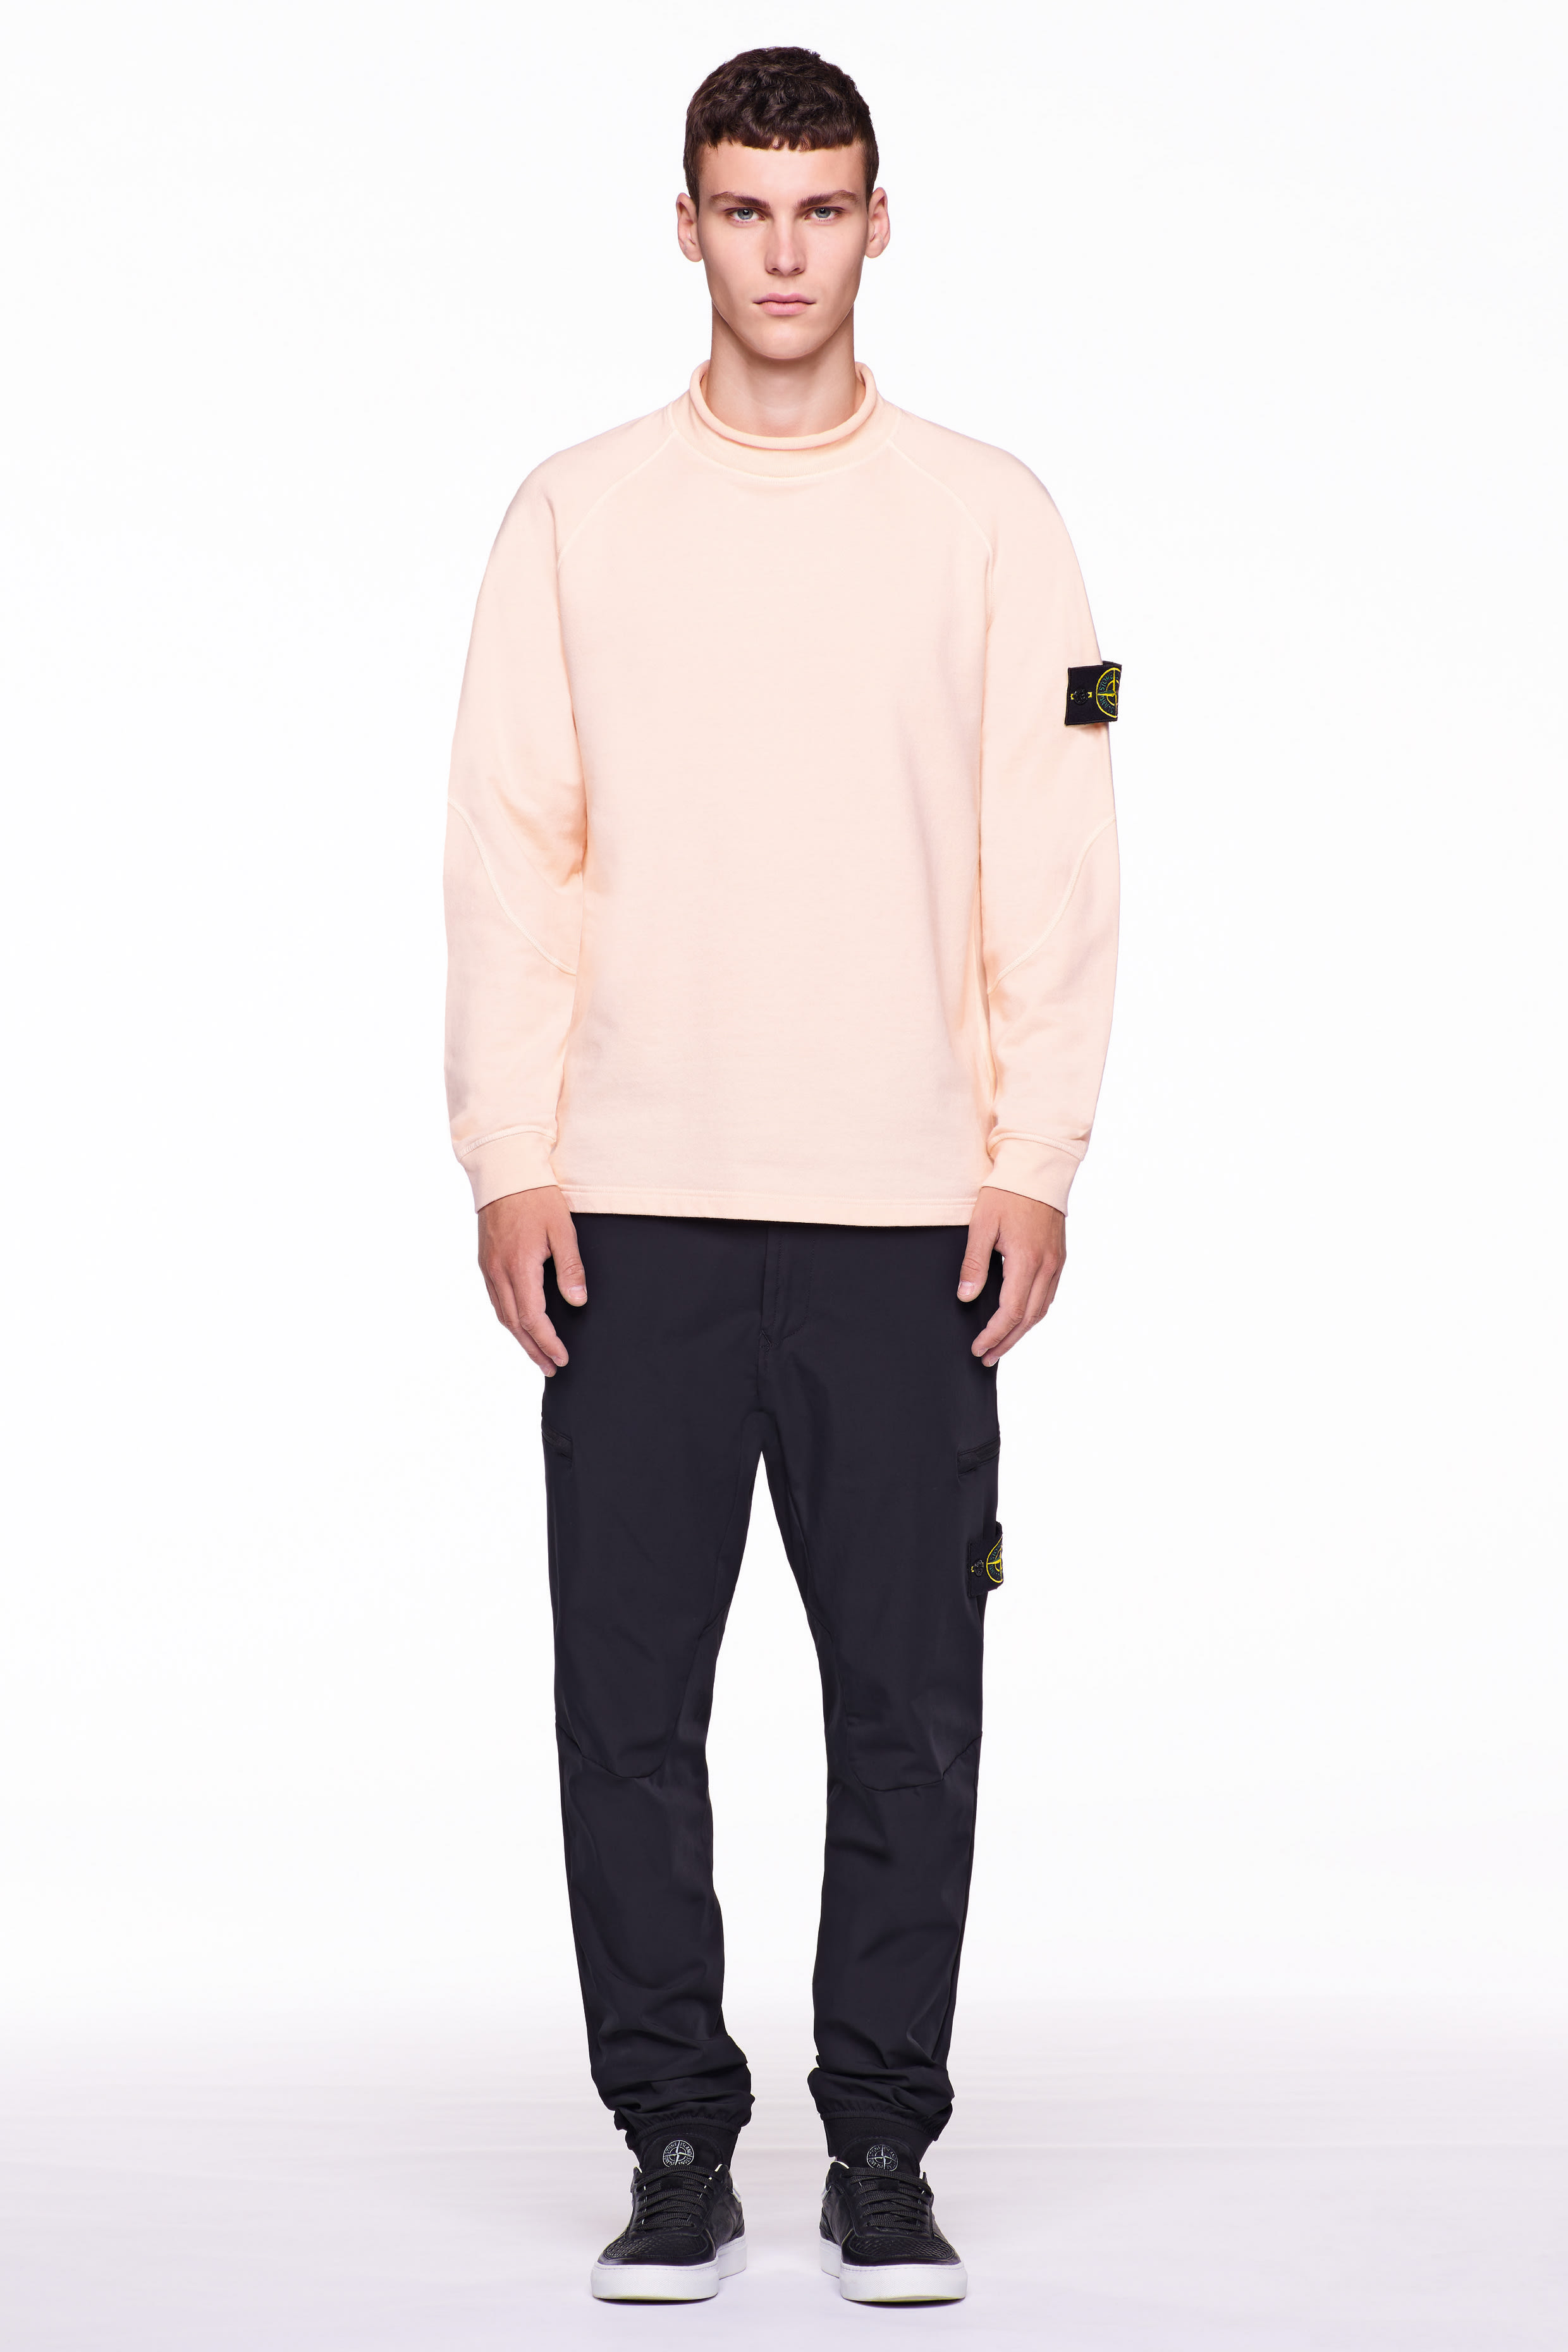 ss18-si21